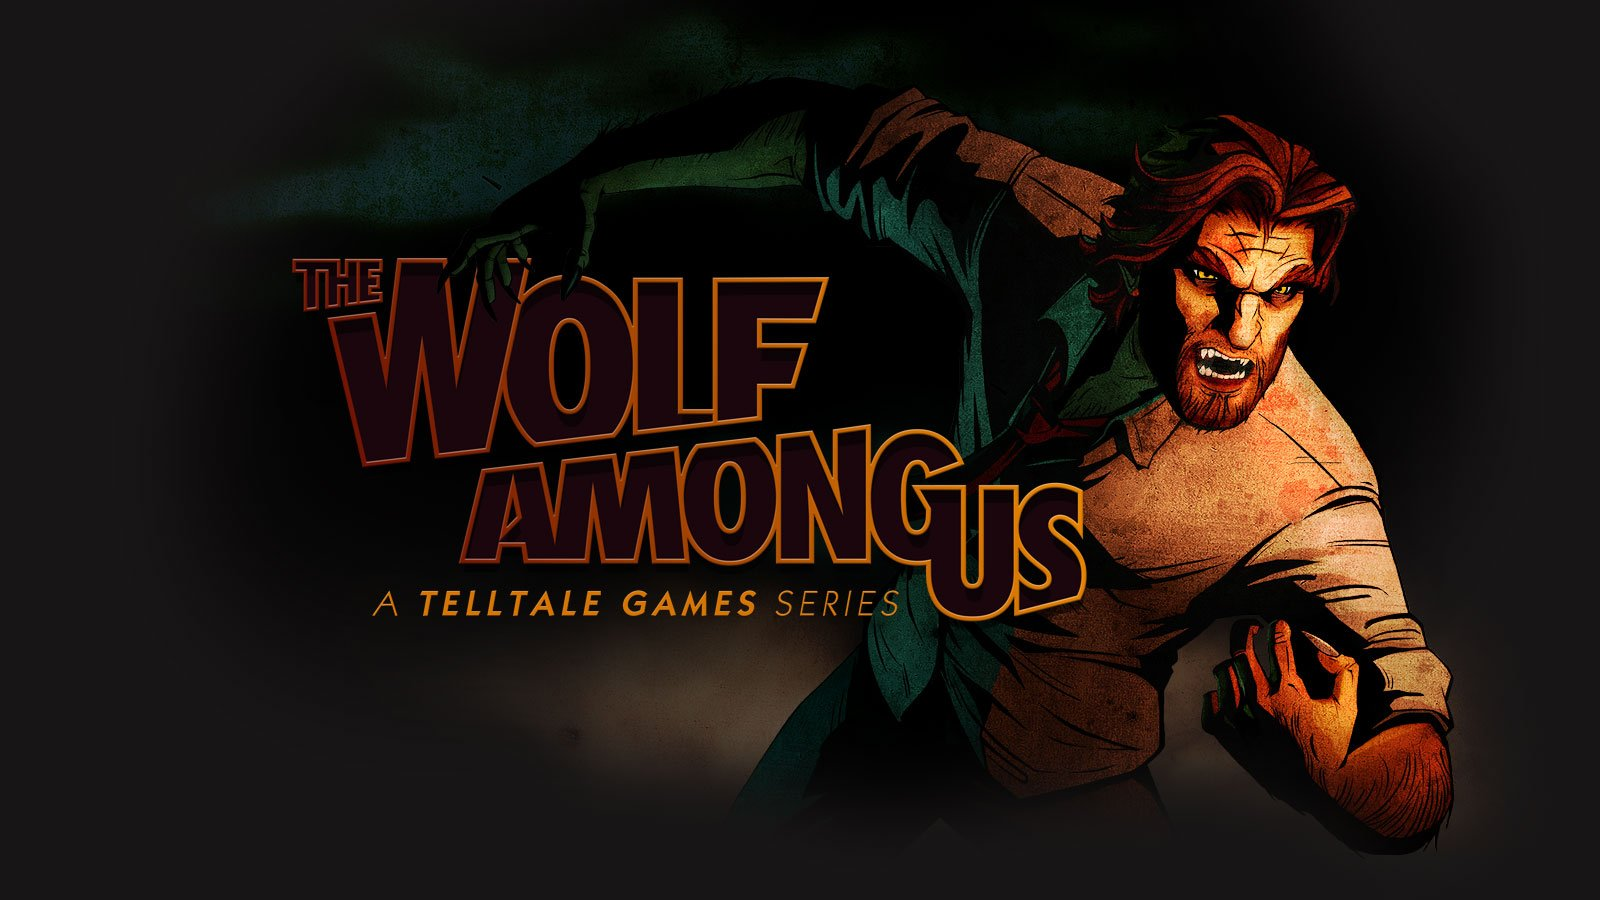 the wolf among us episode 1 faith review gizorama. Black Bedroom Furniture Sets. Home Design Ideas